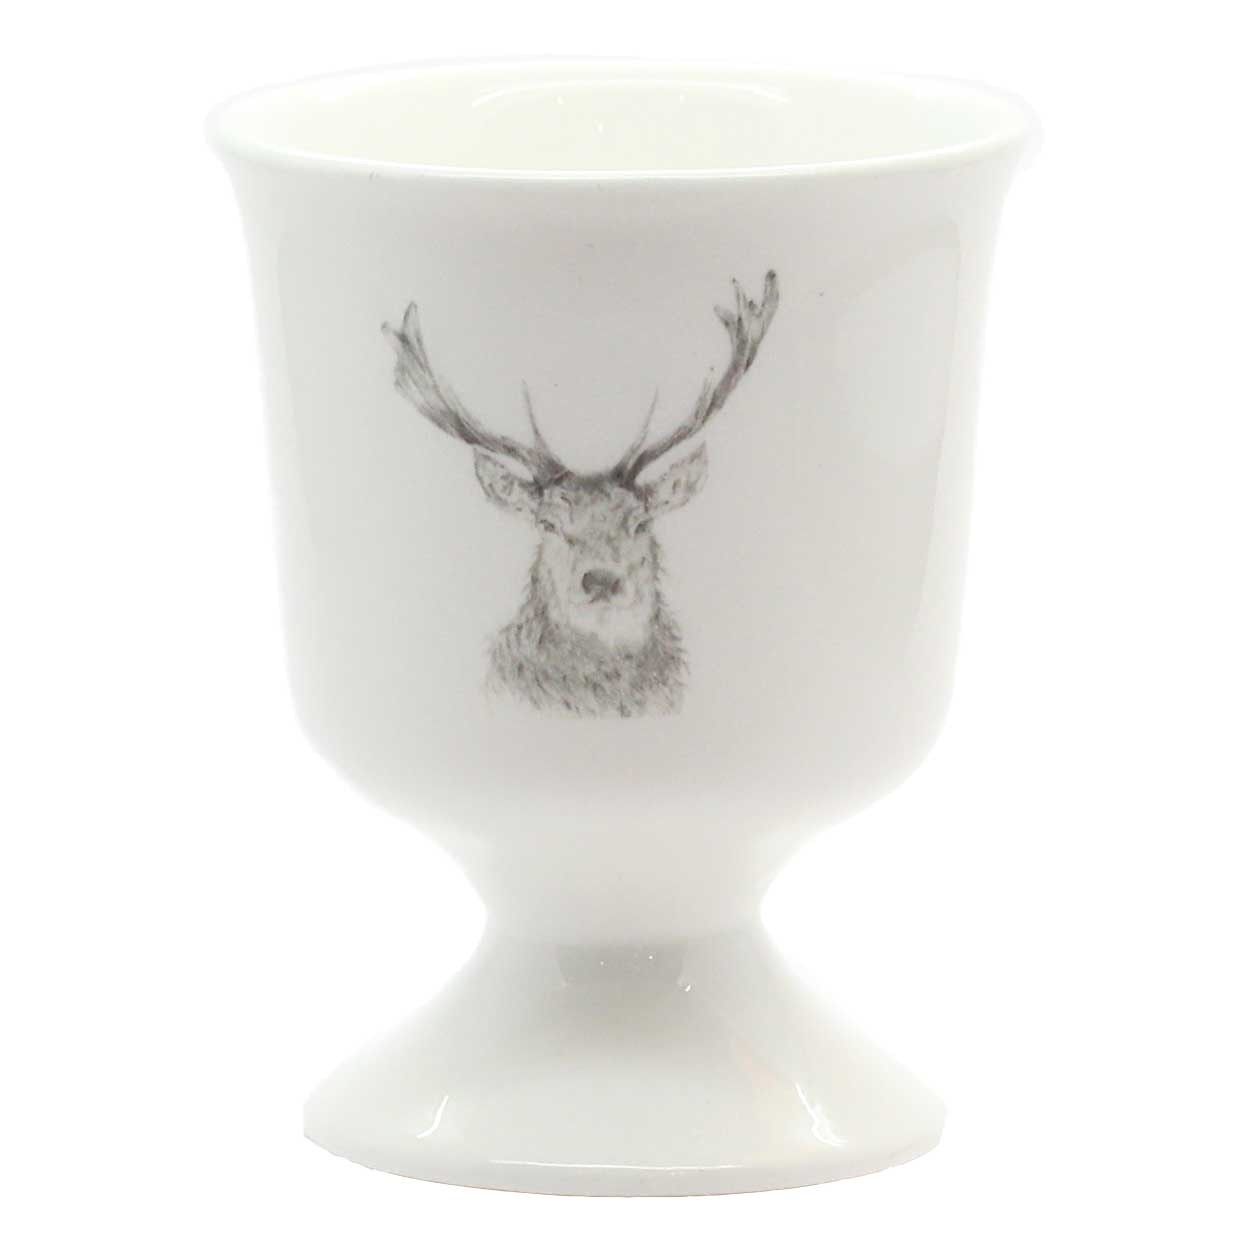 Stag egg cup £7